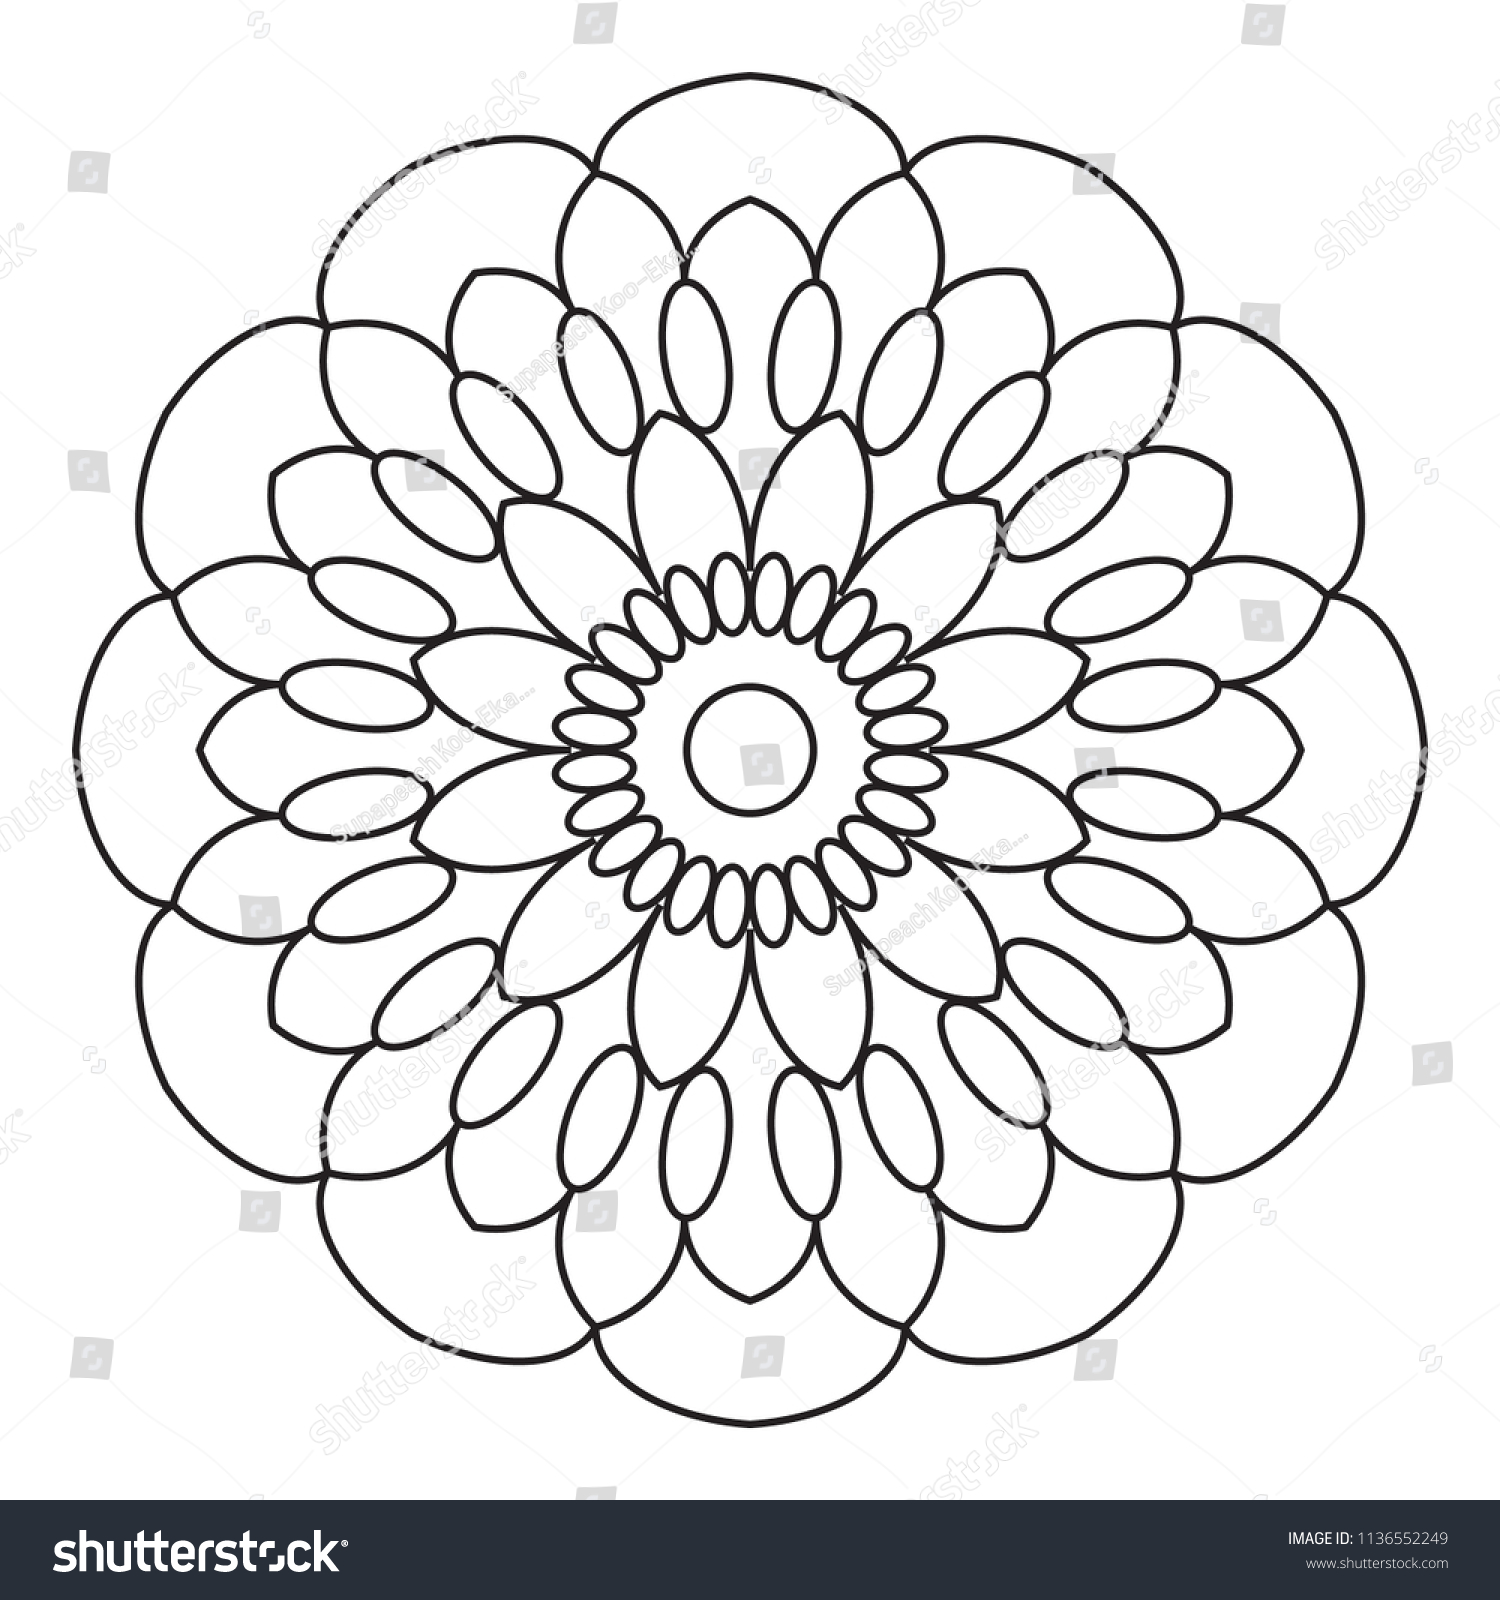 Royalty Free Stock Illustration Of Easy Mandala Basic Simple